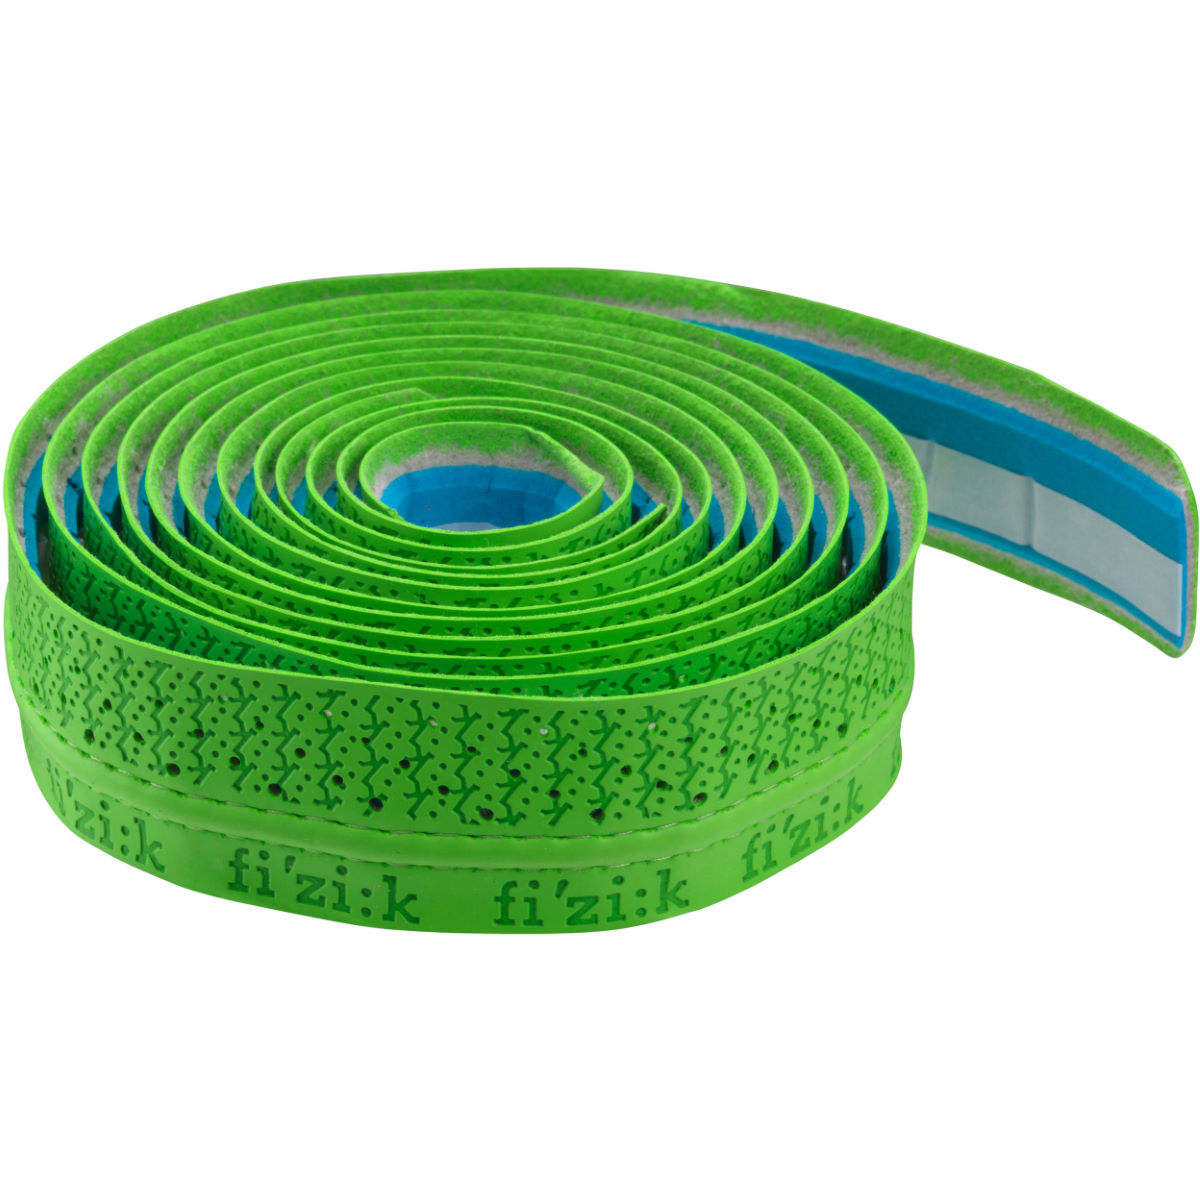 Ruban de cintre Fizik Performance Tacky - Taille unique Vert